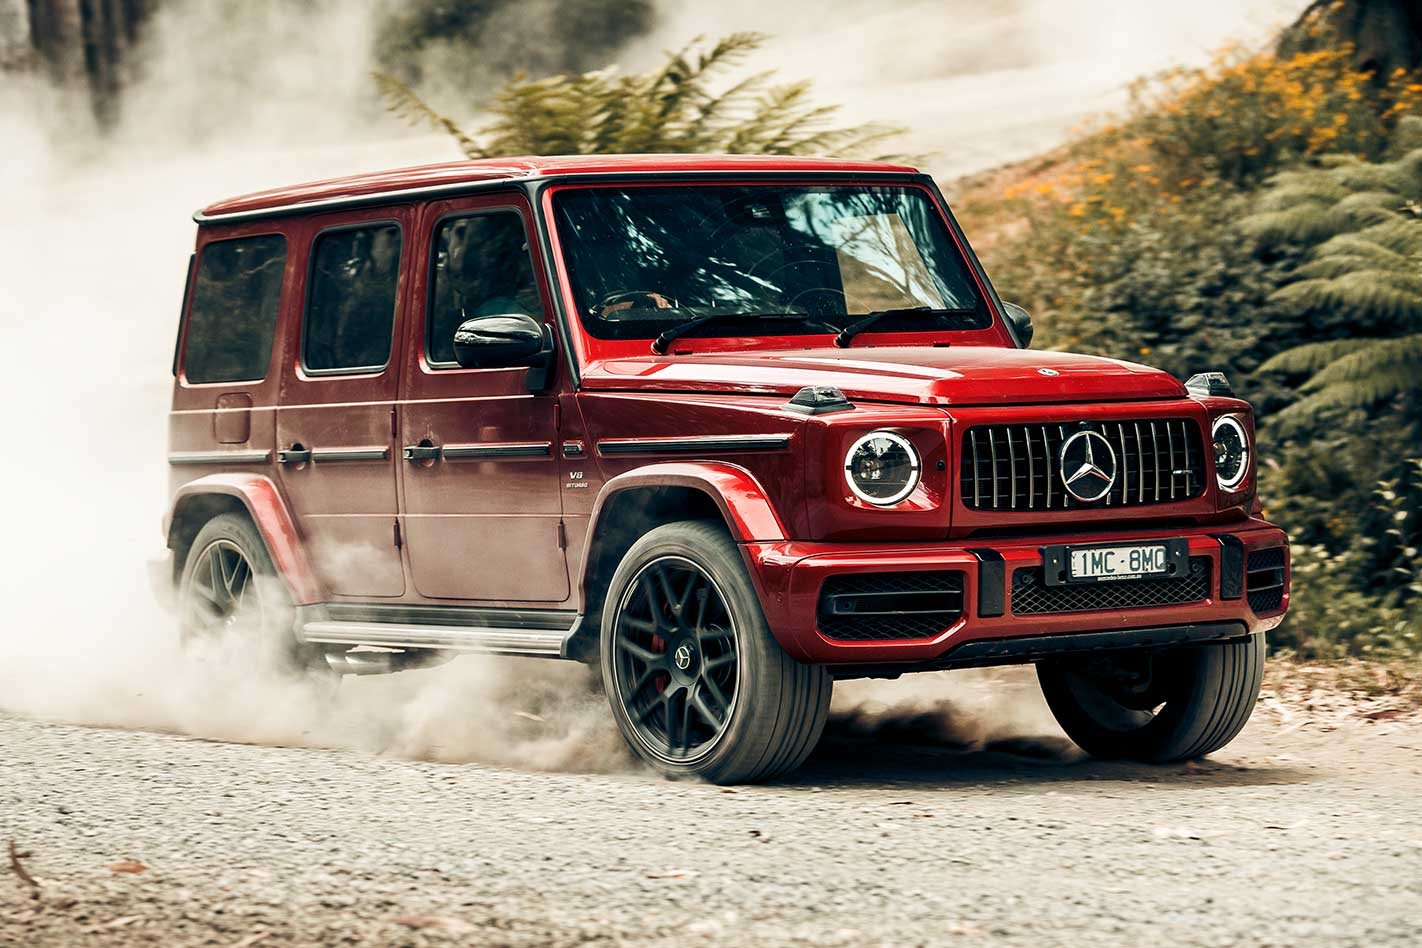 2019 mercedes amg g63 first drive 4x4 review. Black Bedroom Furniture Sets. Home Design Ideas